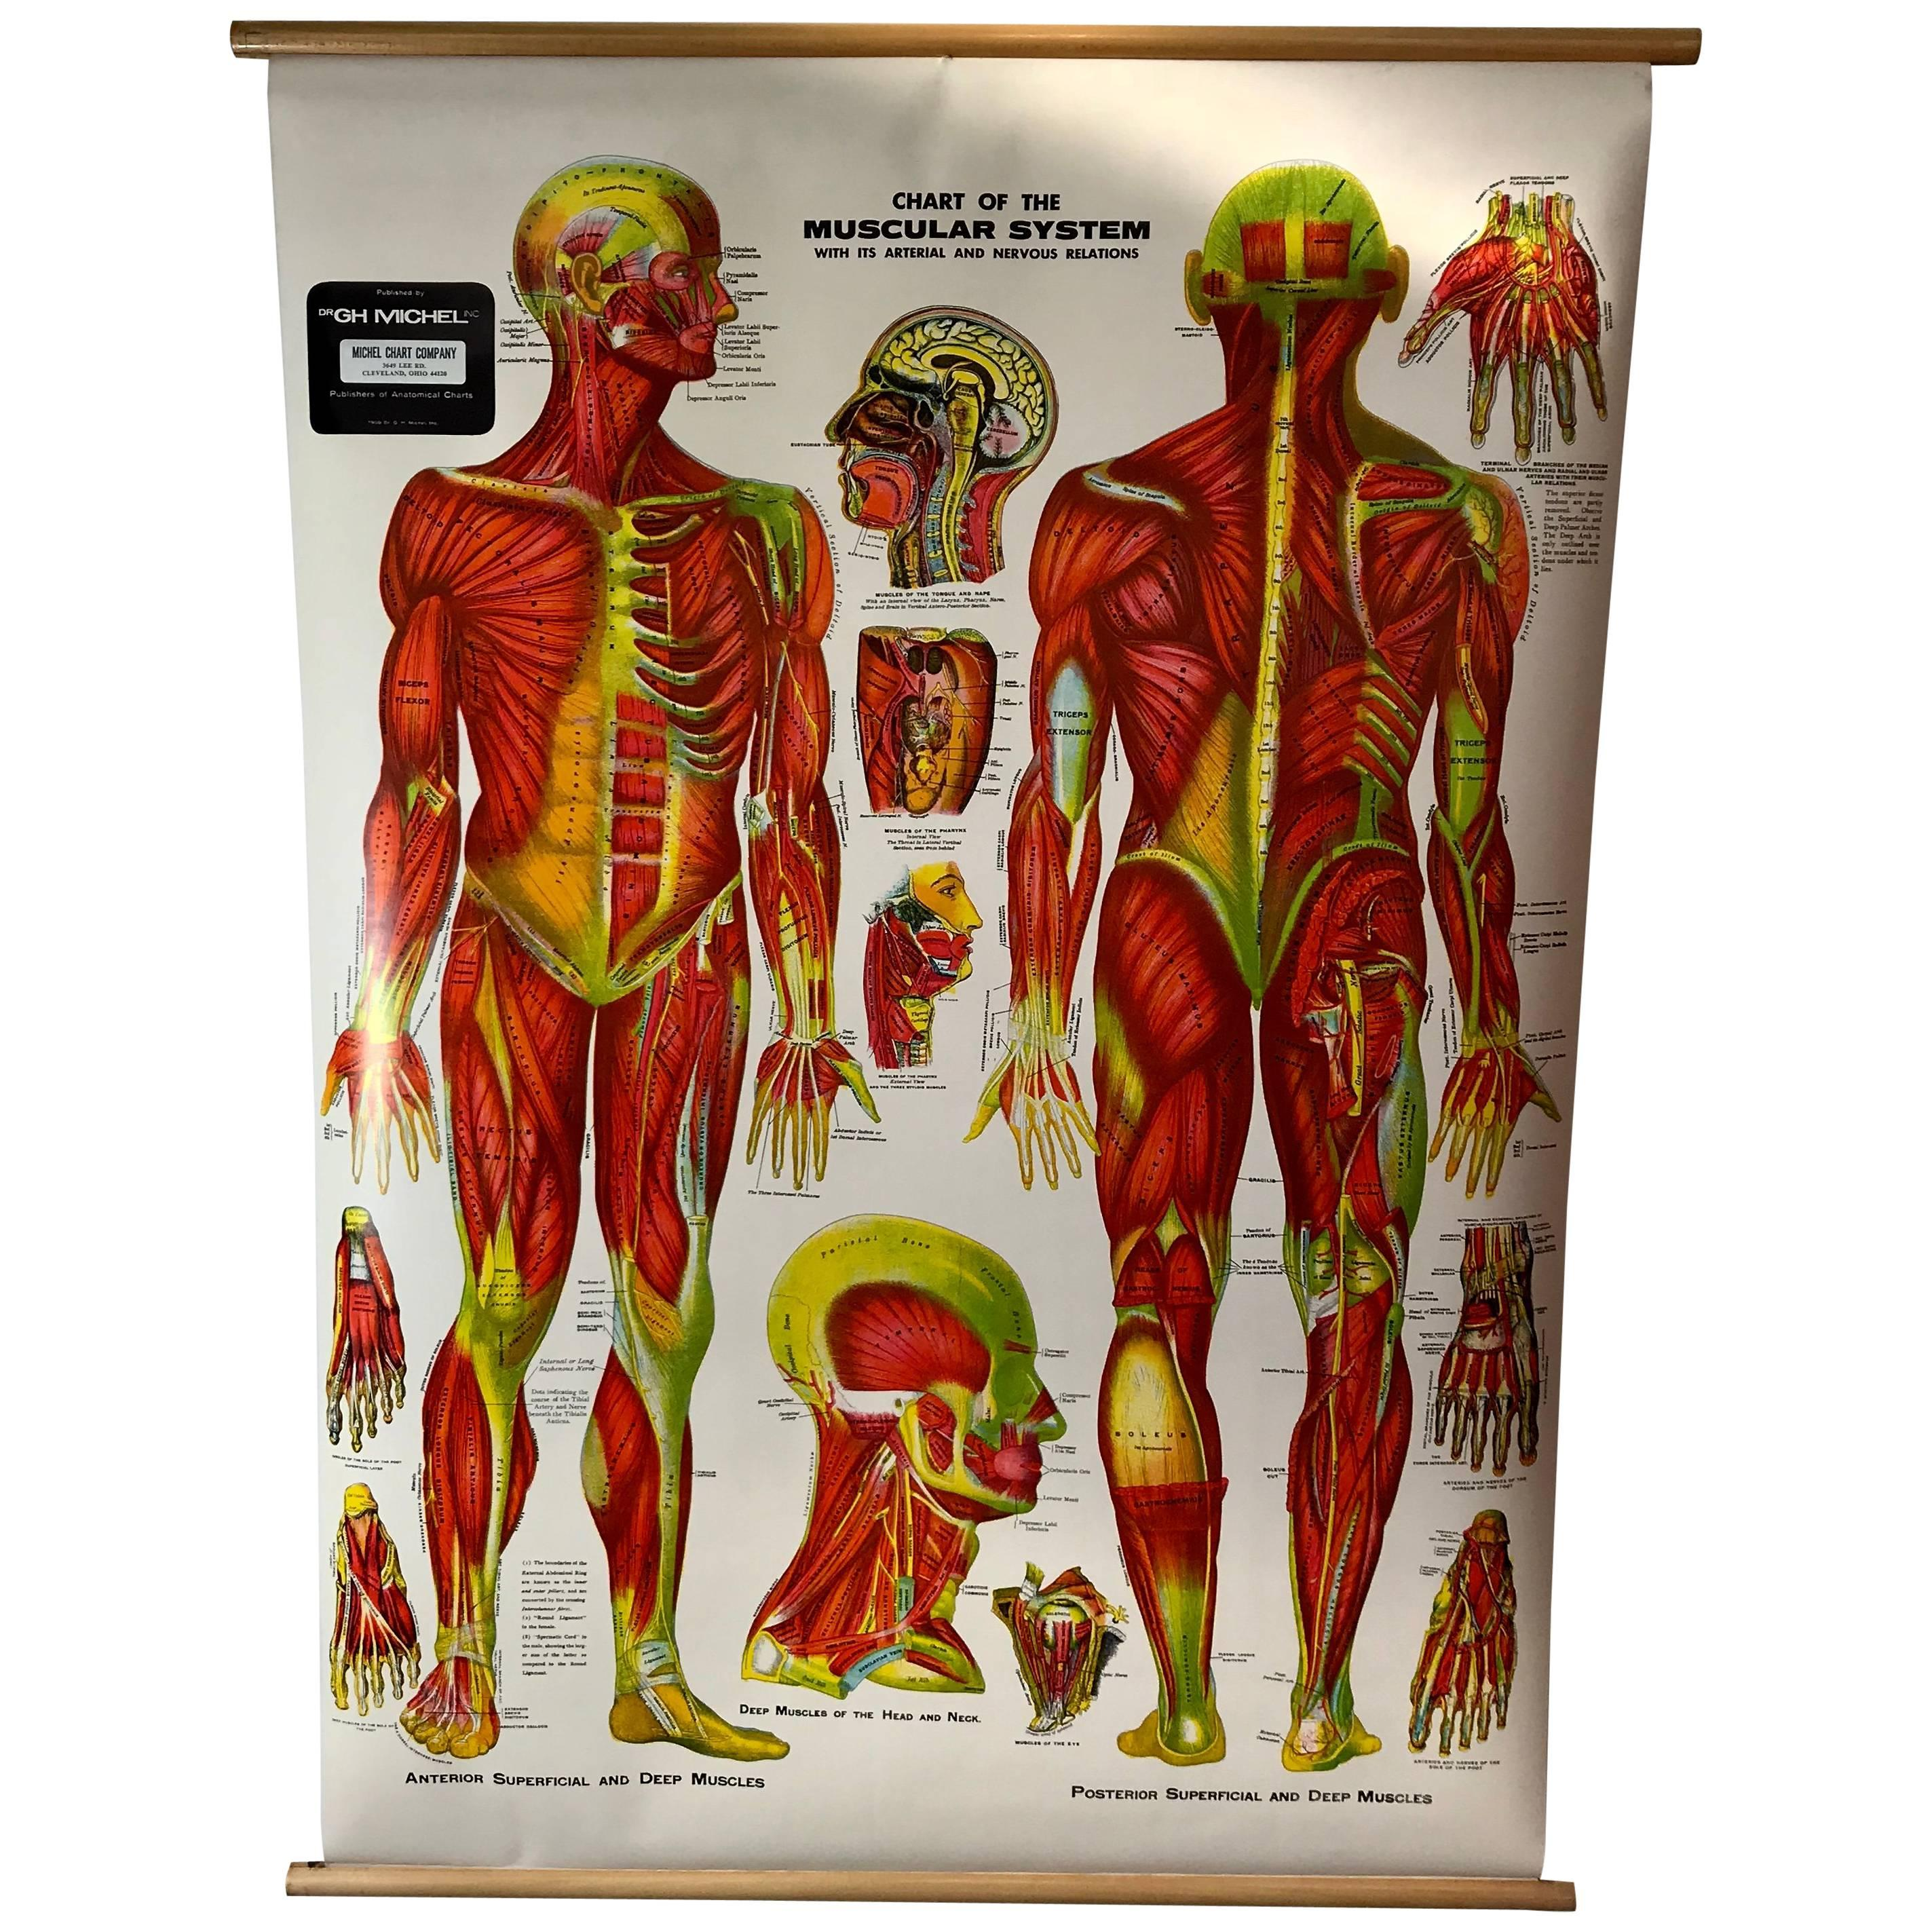 medium resolution of vintage anatomical pull down chart muscular system gh michel chart company for sale at 1stdibs